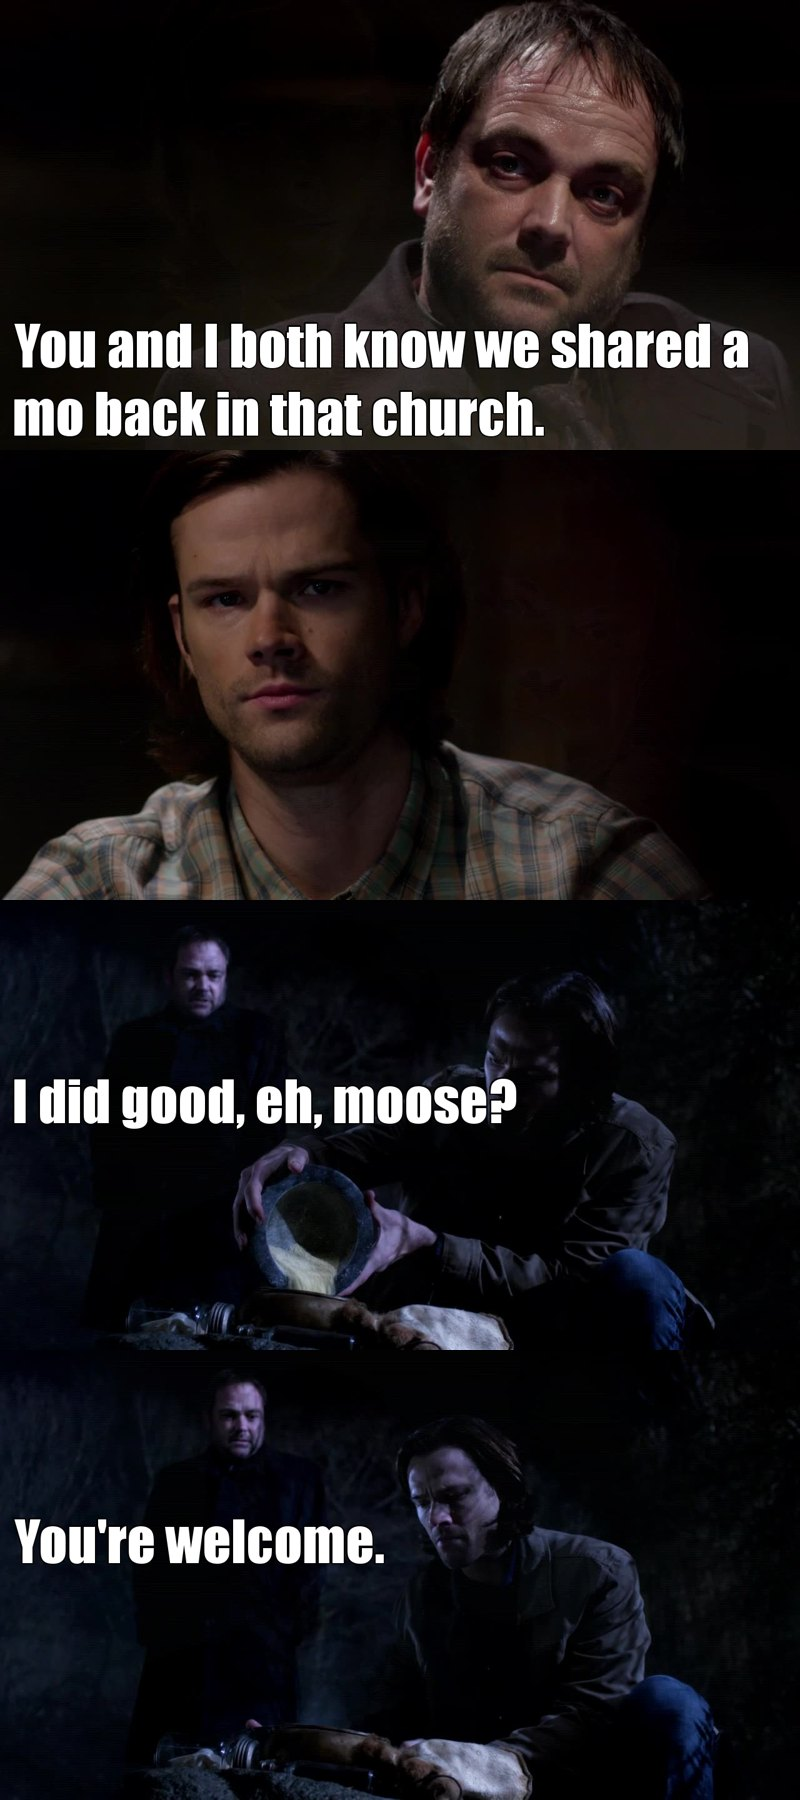 Crowley is so sweet with his Moose haha. I love how Dean has Cas and Sam has Crowley. You know Angel and Demon, Michael's meat suit and Lucifer's meat suit. Always has been like this with the brothers